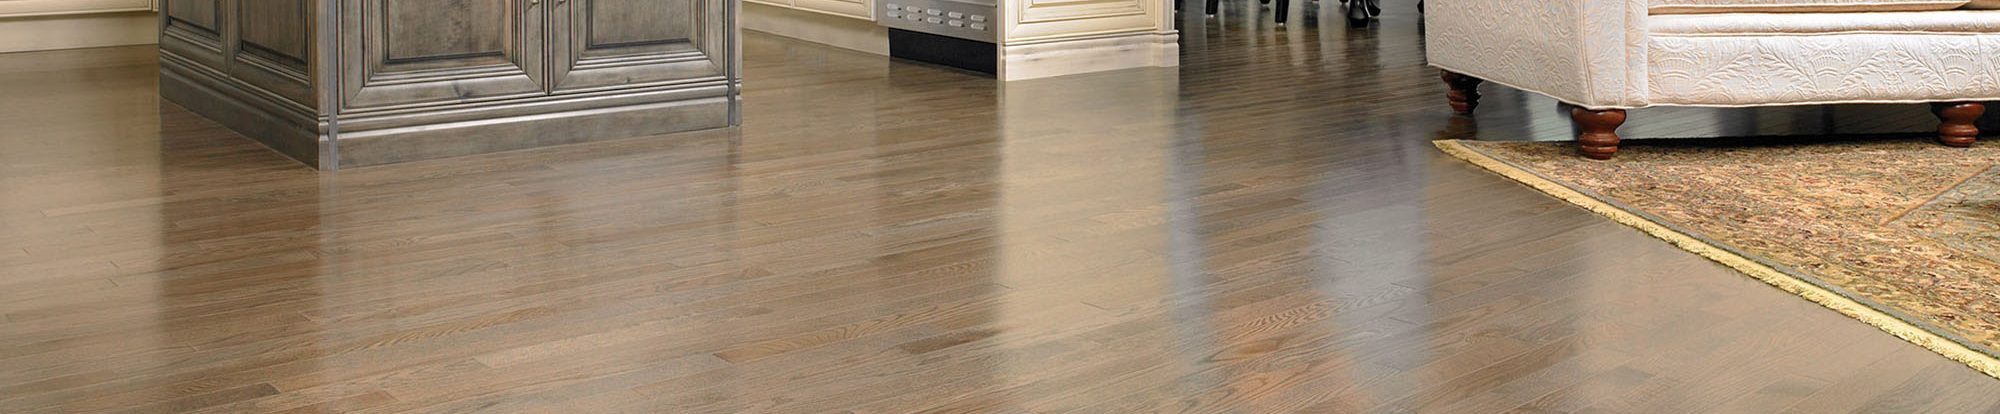 Hardwood Floor Refinishing Doylestown Pa Of Derr Flooring Company Supplying the Highest Quality Flooring Products In Derrbackgroundslider4 2000x414